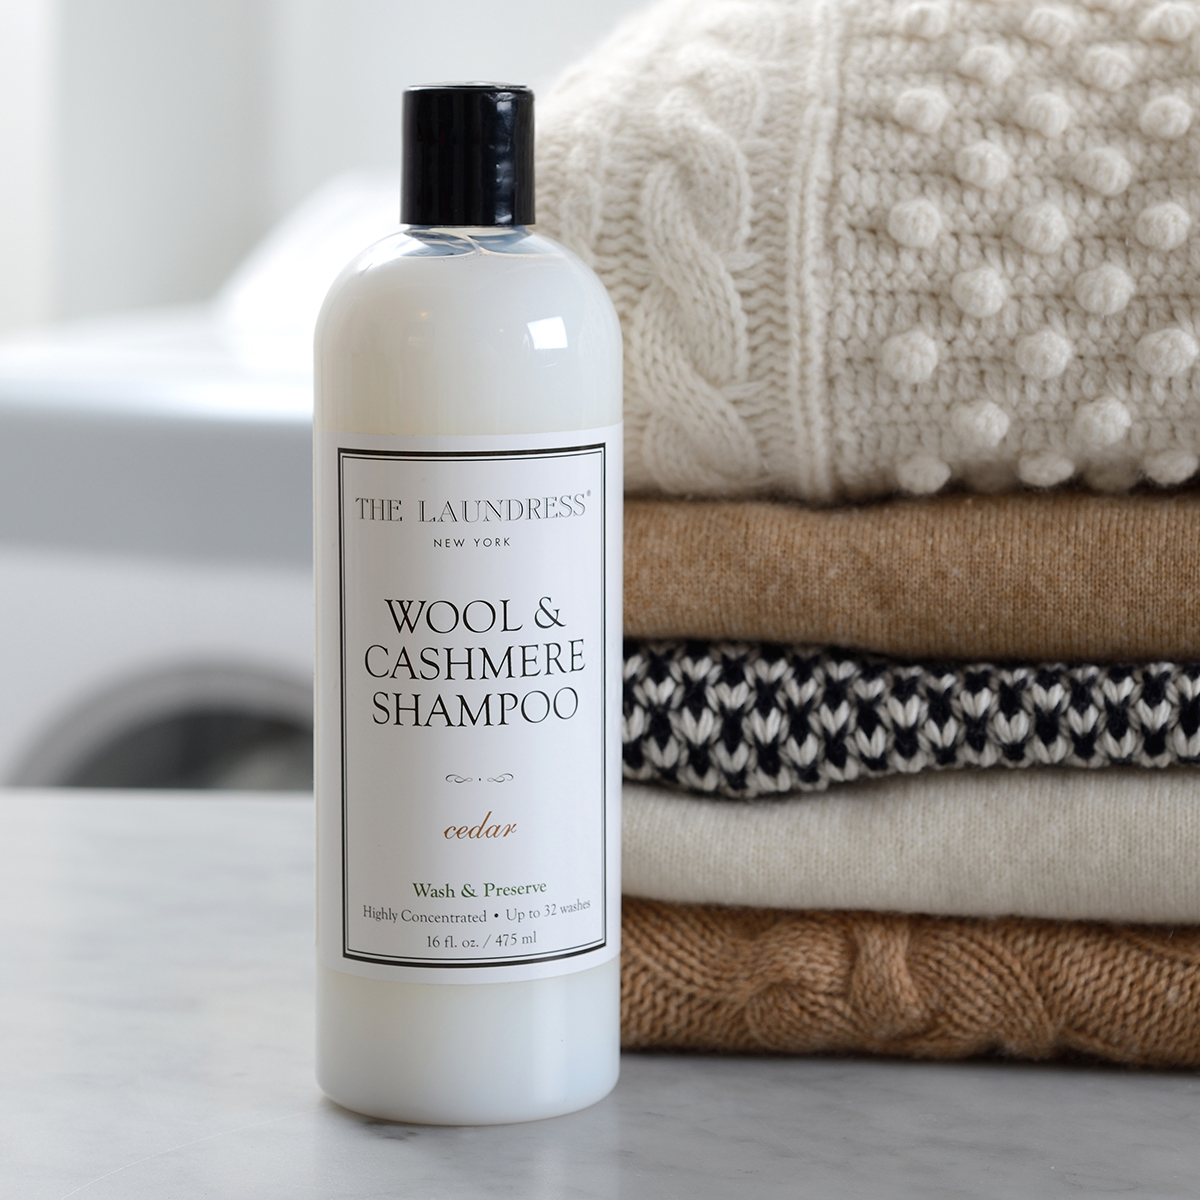 The Laundress 16 oz. Wool & Cashmere Shampoo